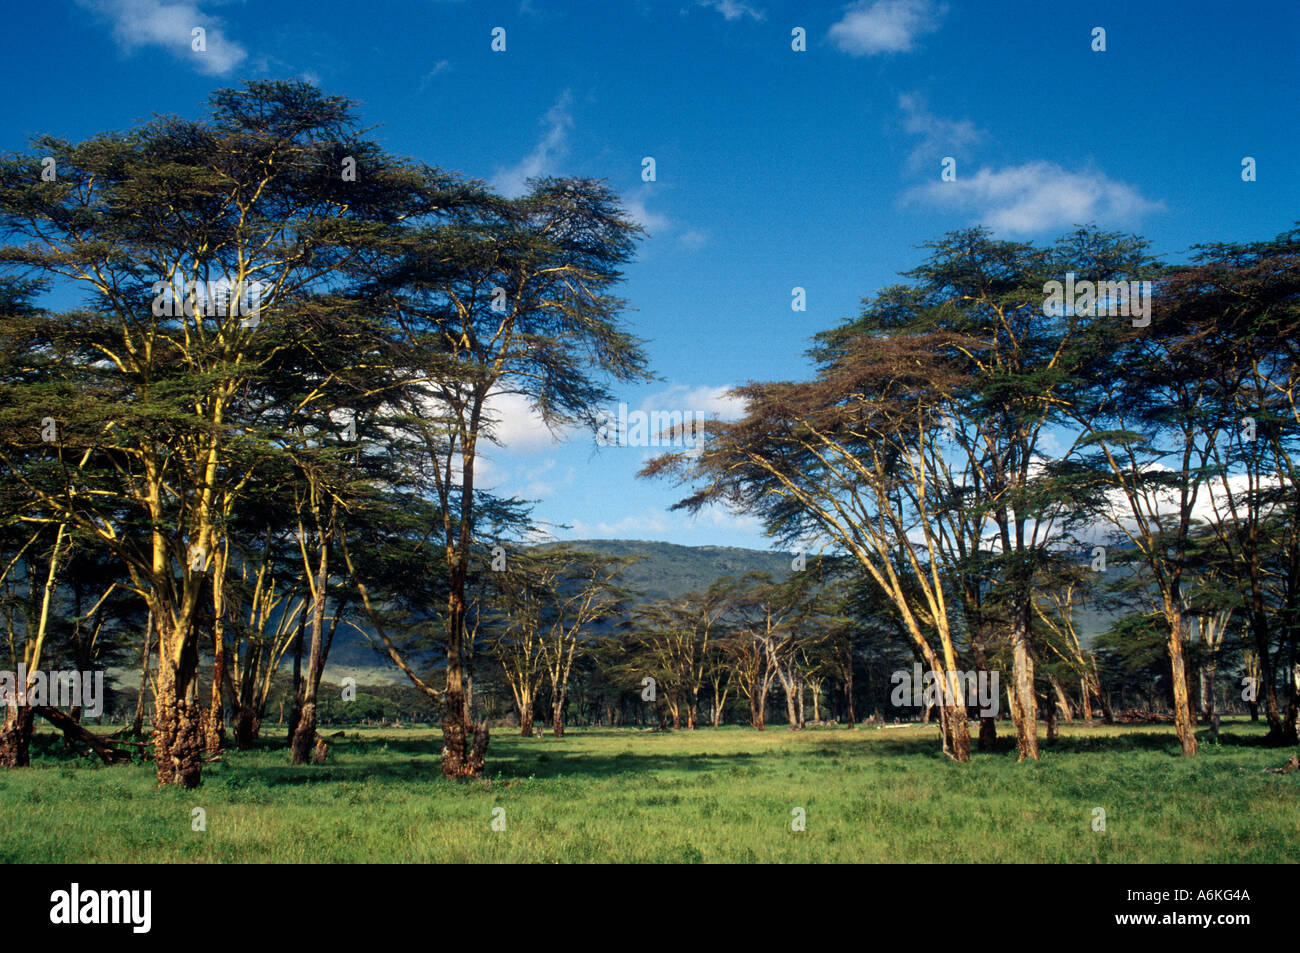 Square Habitat 35 A Stand Of Acacia Trees Ngorongoro Crater The Largest Intact